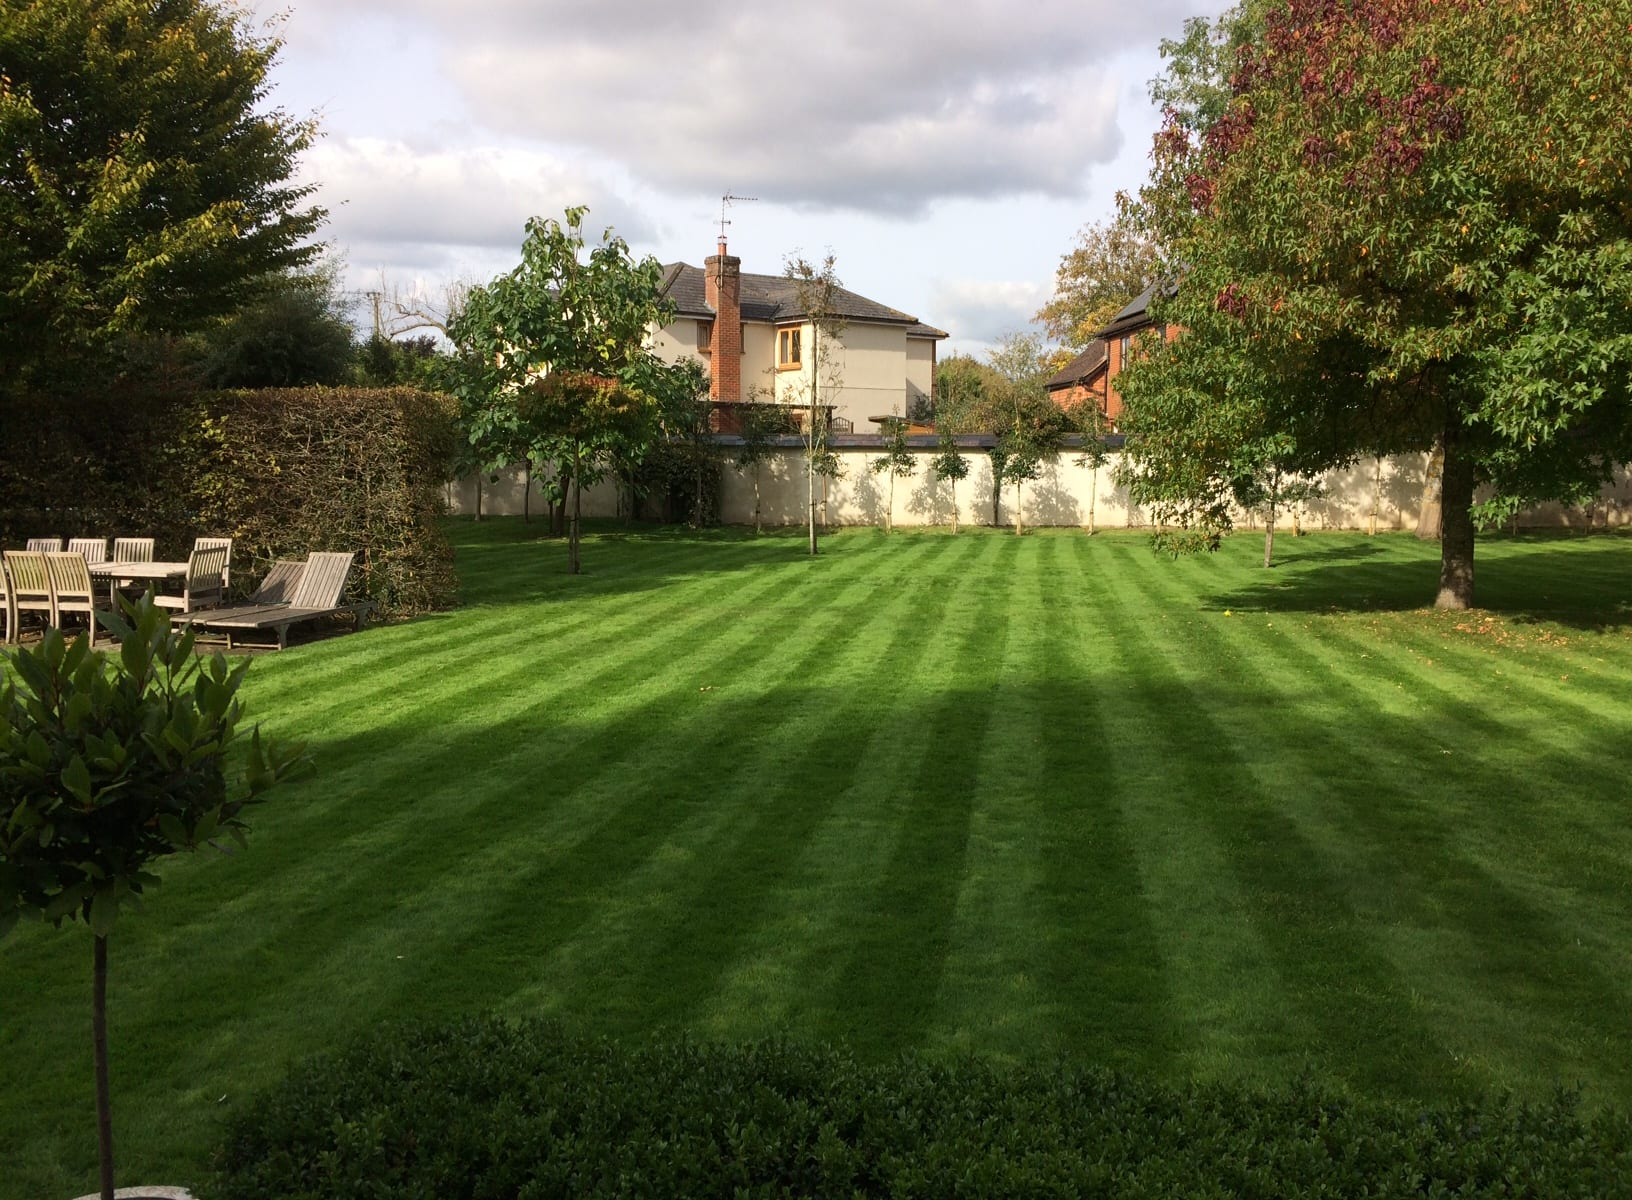 Perfect lawn mowing stripes